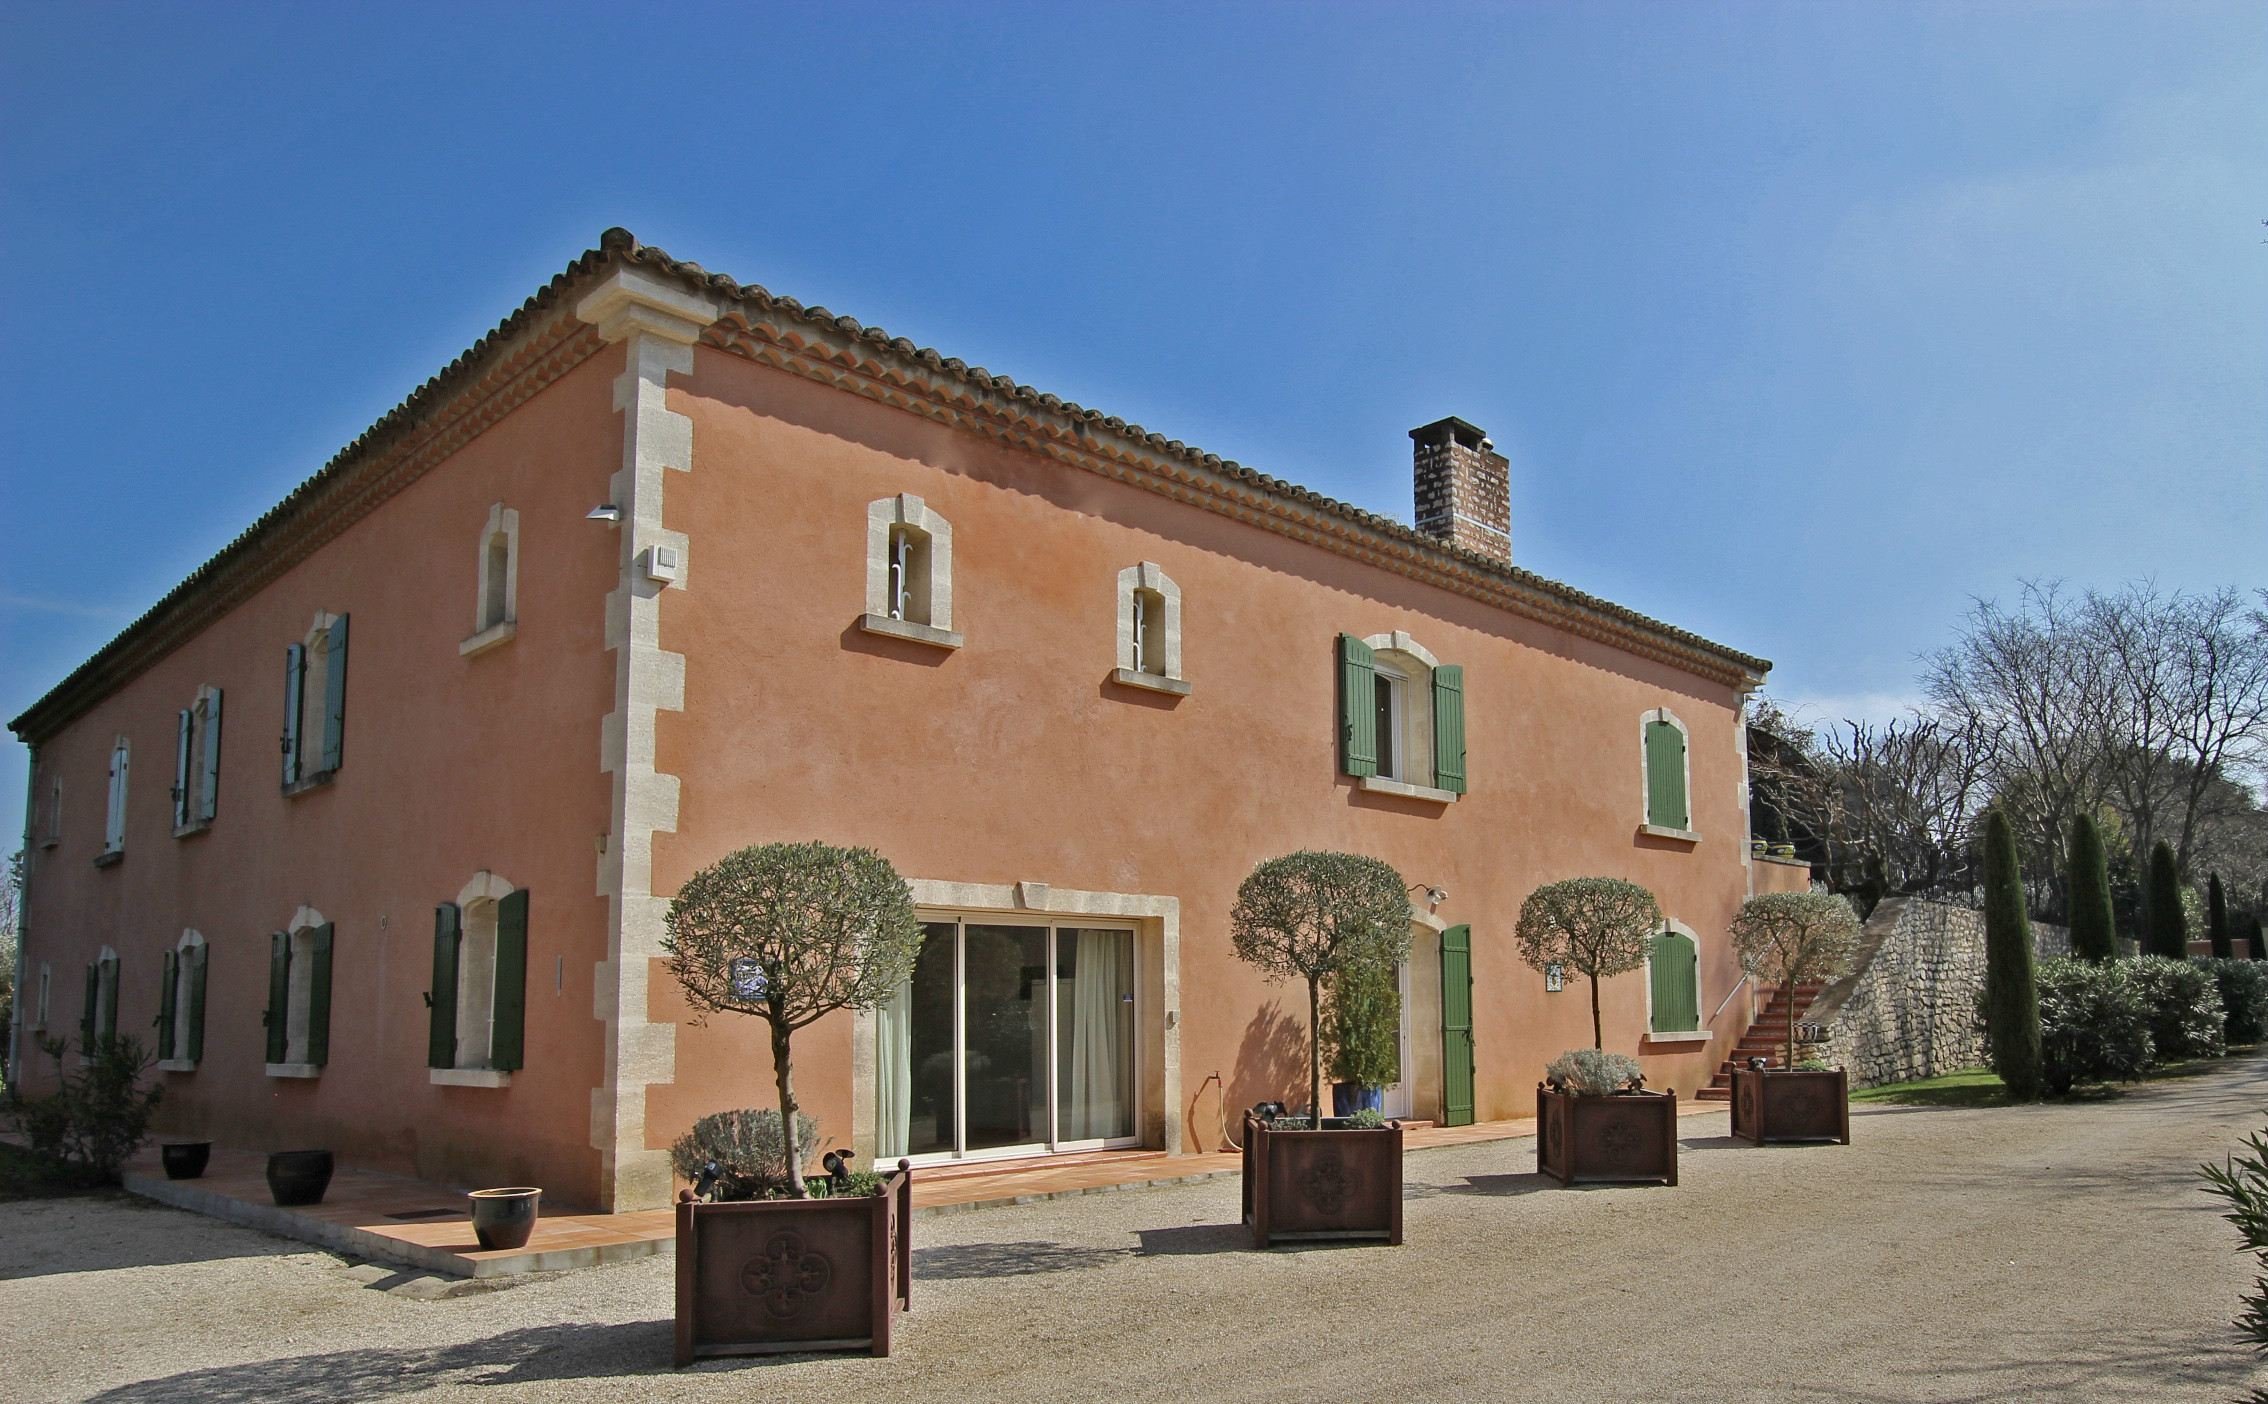 Single Family Home for Sale at Property located within 5 mn drive from the village center Other Provence-Alpes-Cote D'Azur, Provence-Alpes-Cote D'Azur, 13210 France